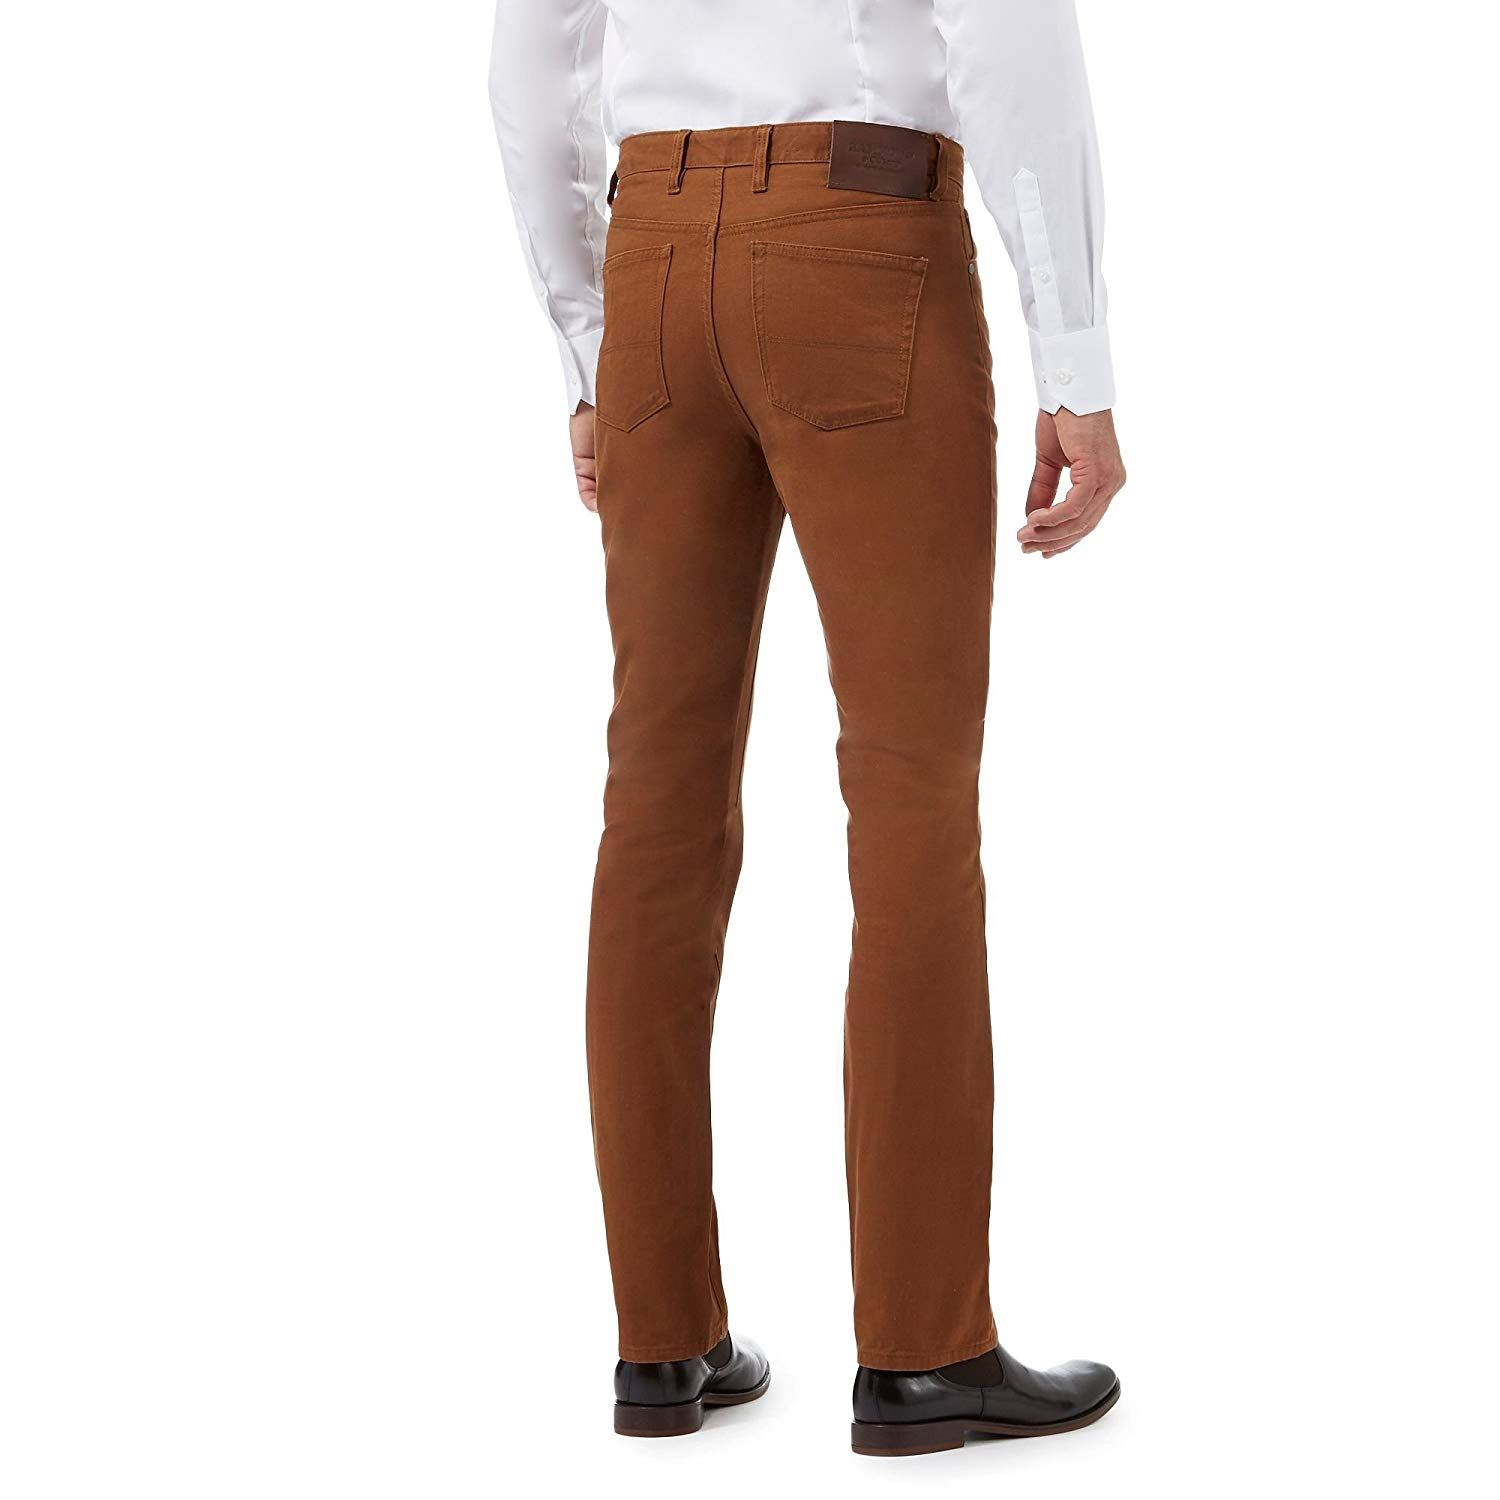 Hammond-amp-Co-By-Patrick-Grant-Twill-Trousers-Jeans thumbnail 3